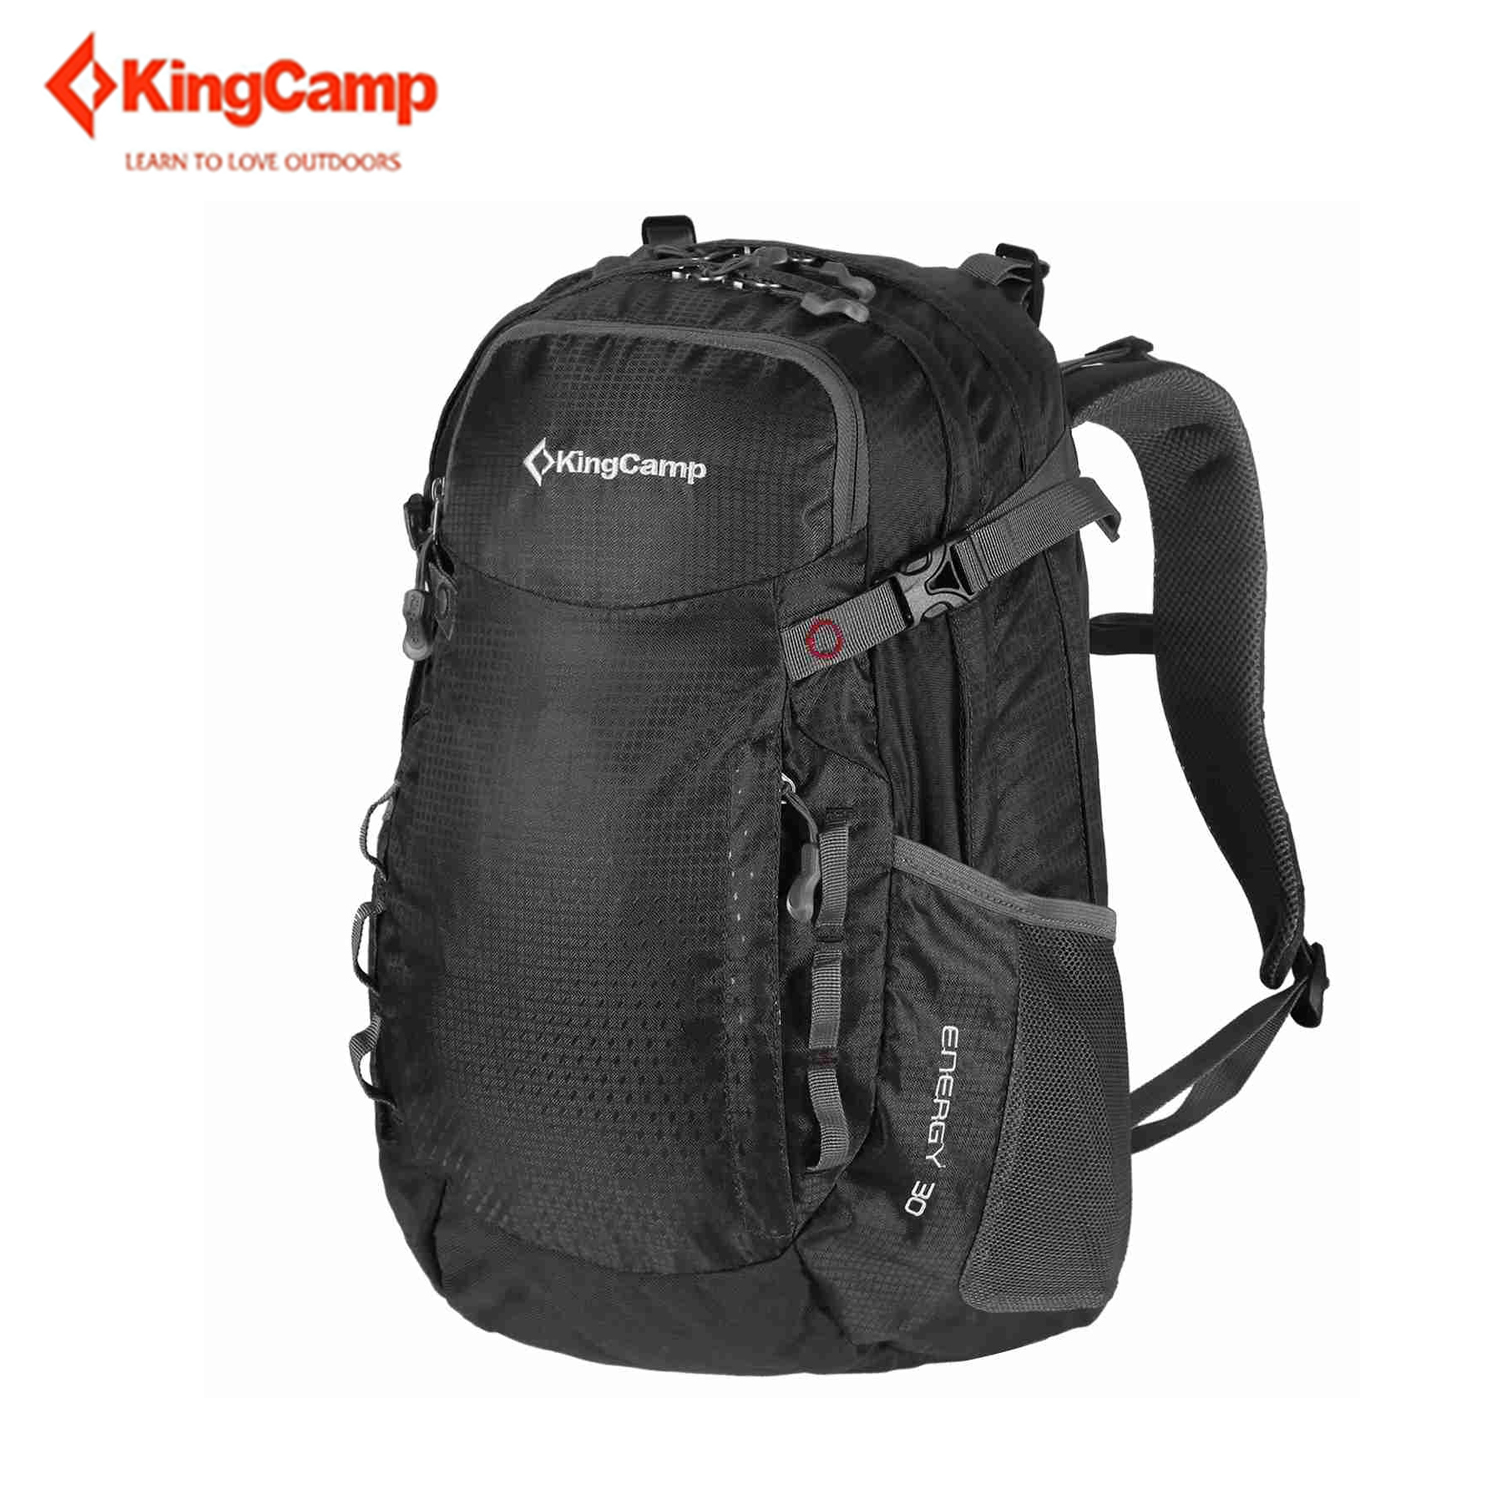 KingCamp ENERGY Outdoor Hiking Clambing Travelling Backpack with Adjustable Strap Belt 30L Waterproof Outdoor Camping Bag kingcamp moon 30